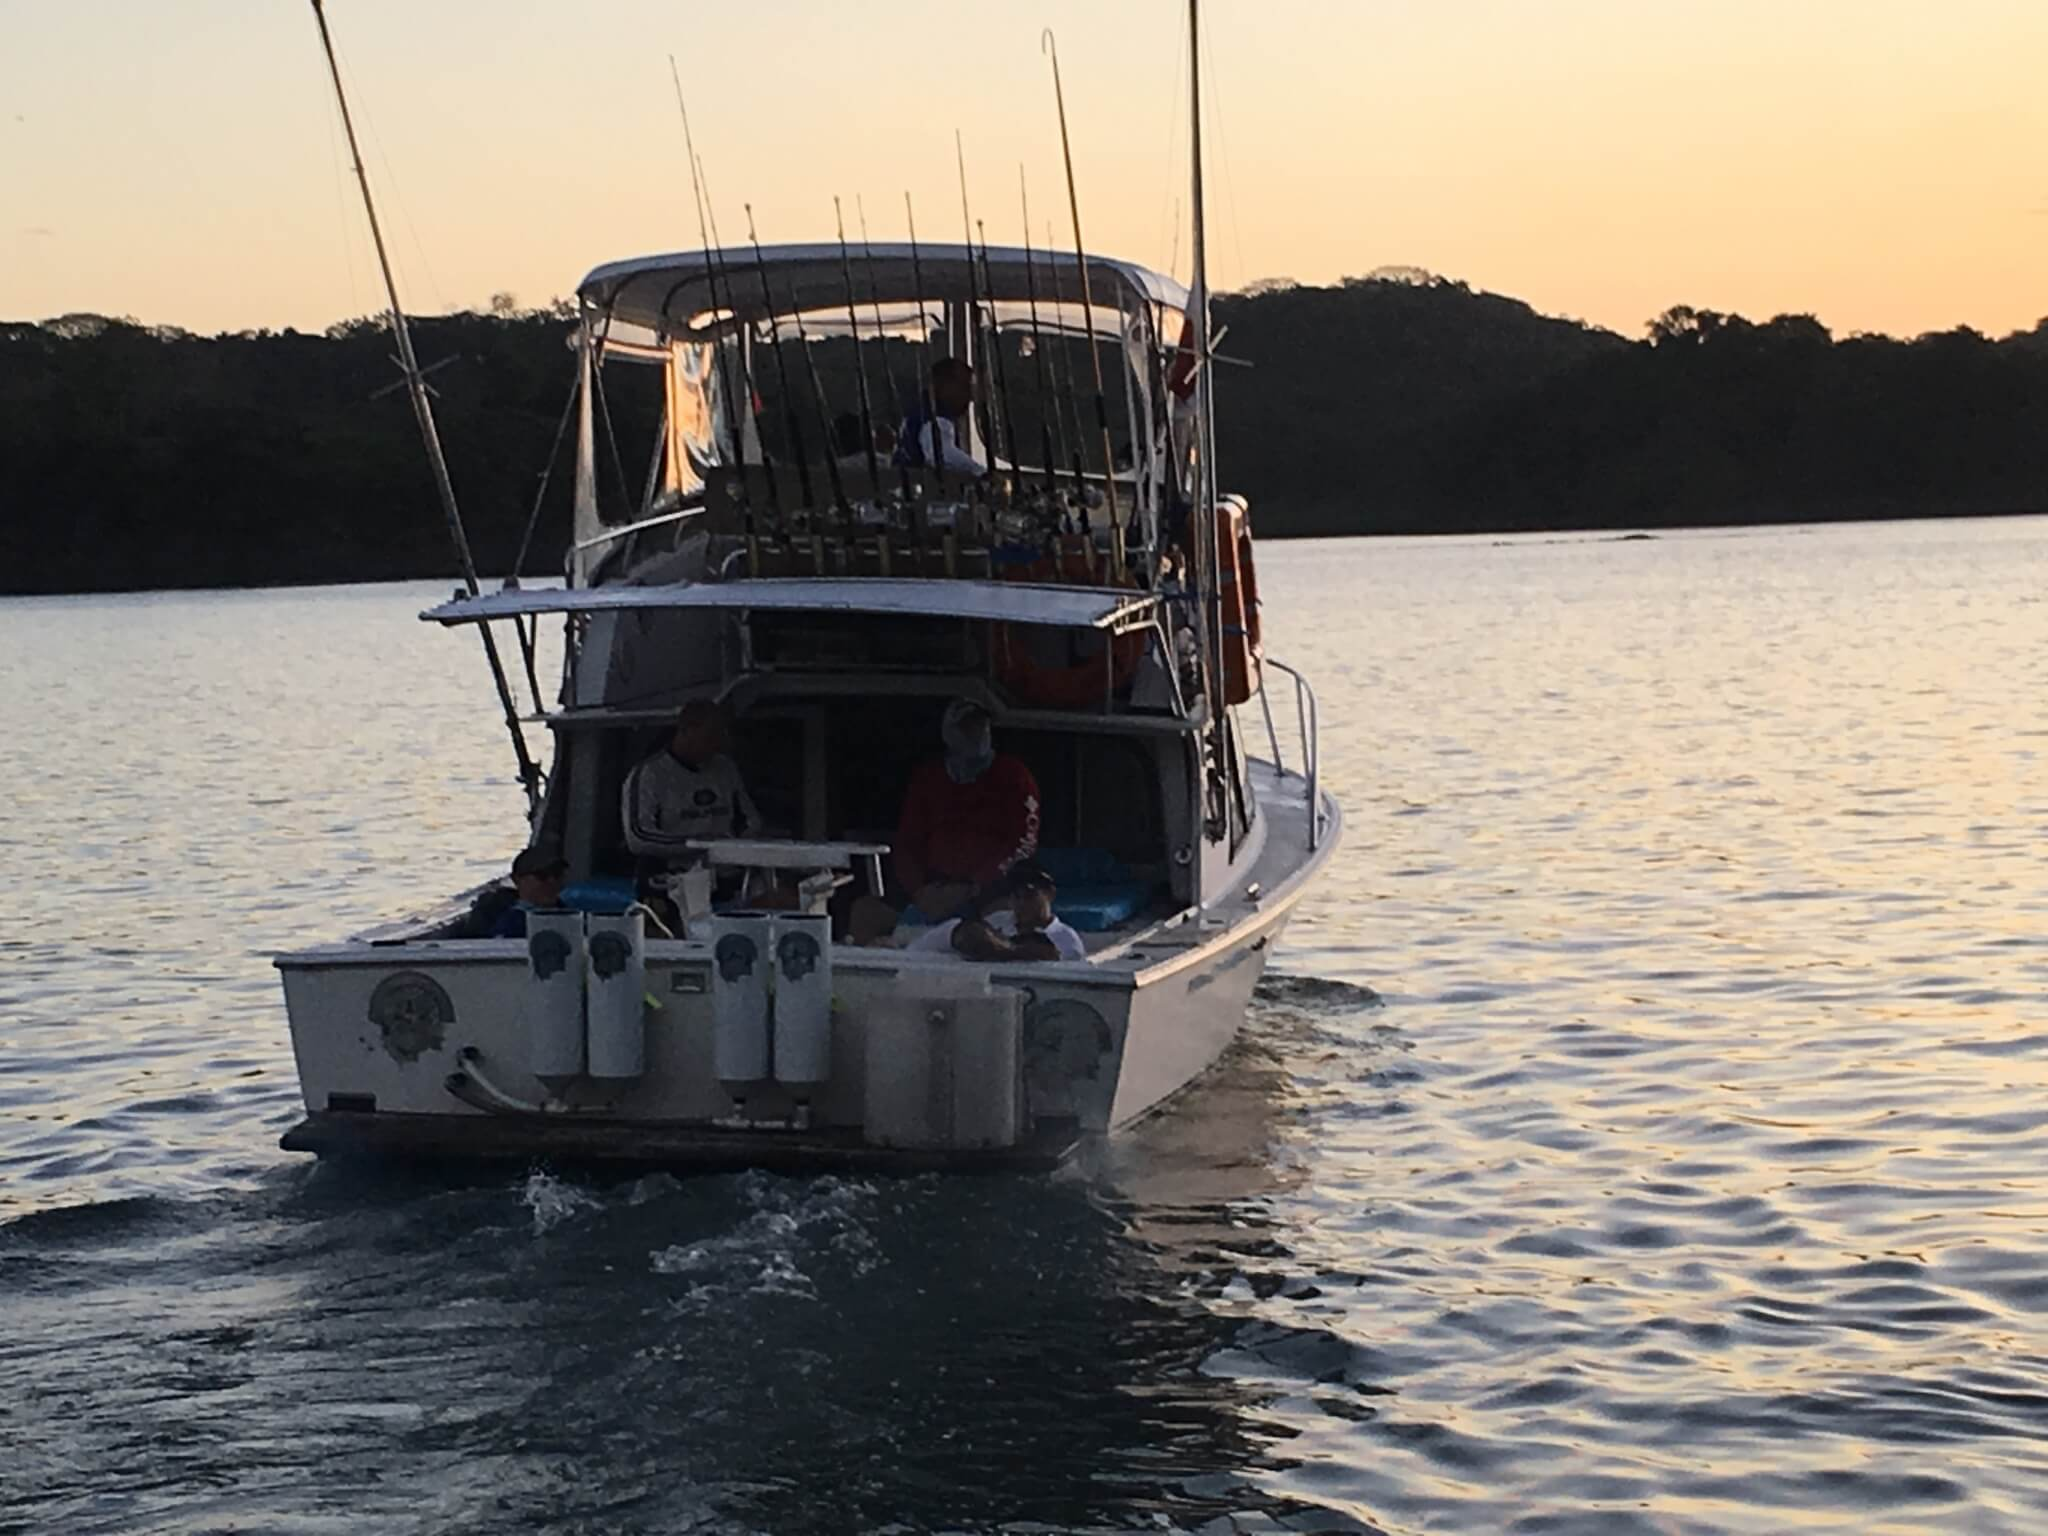 Selecting a Charter Company with Sports Fishing Boats